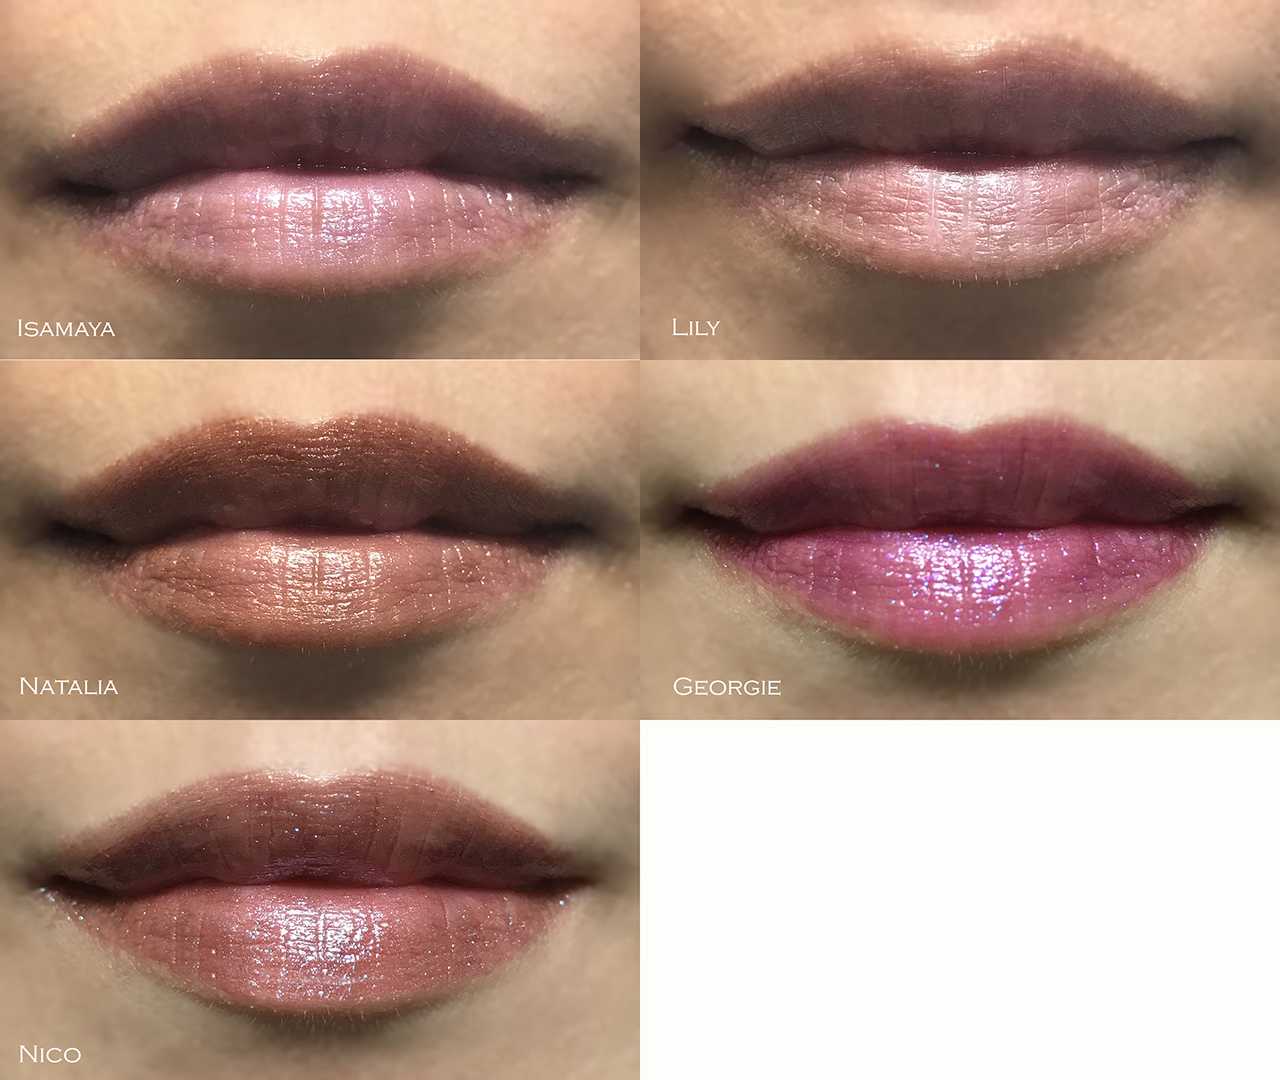 Tom Ford Boys and Girls lip swatches